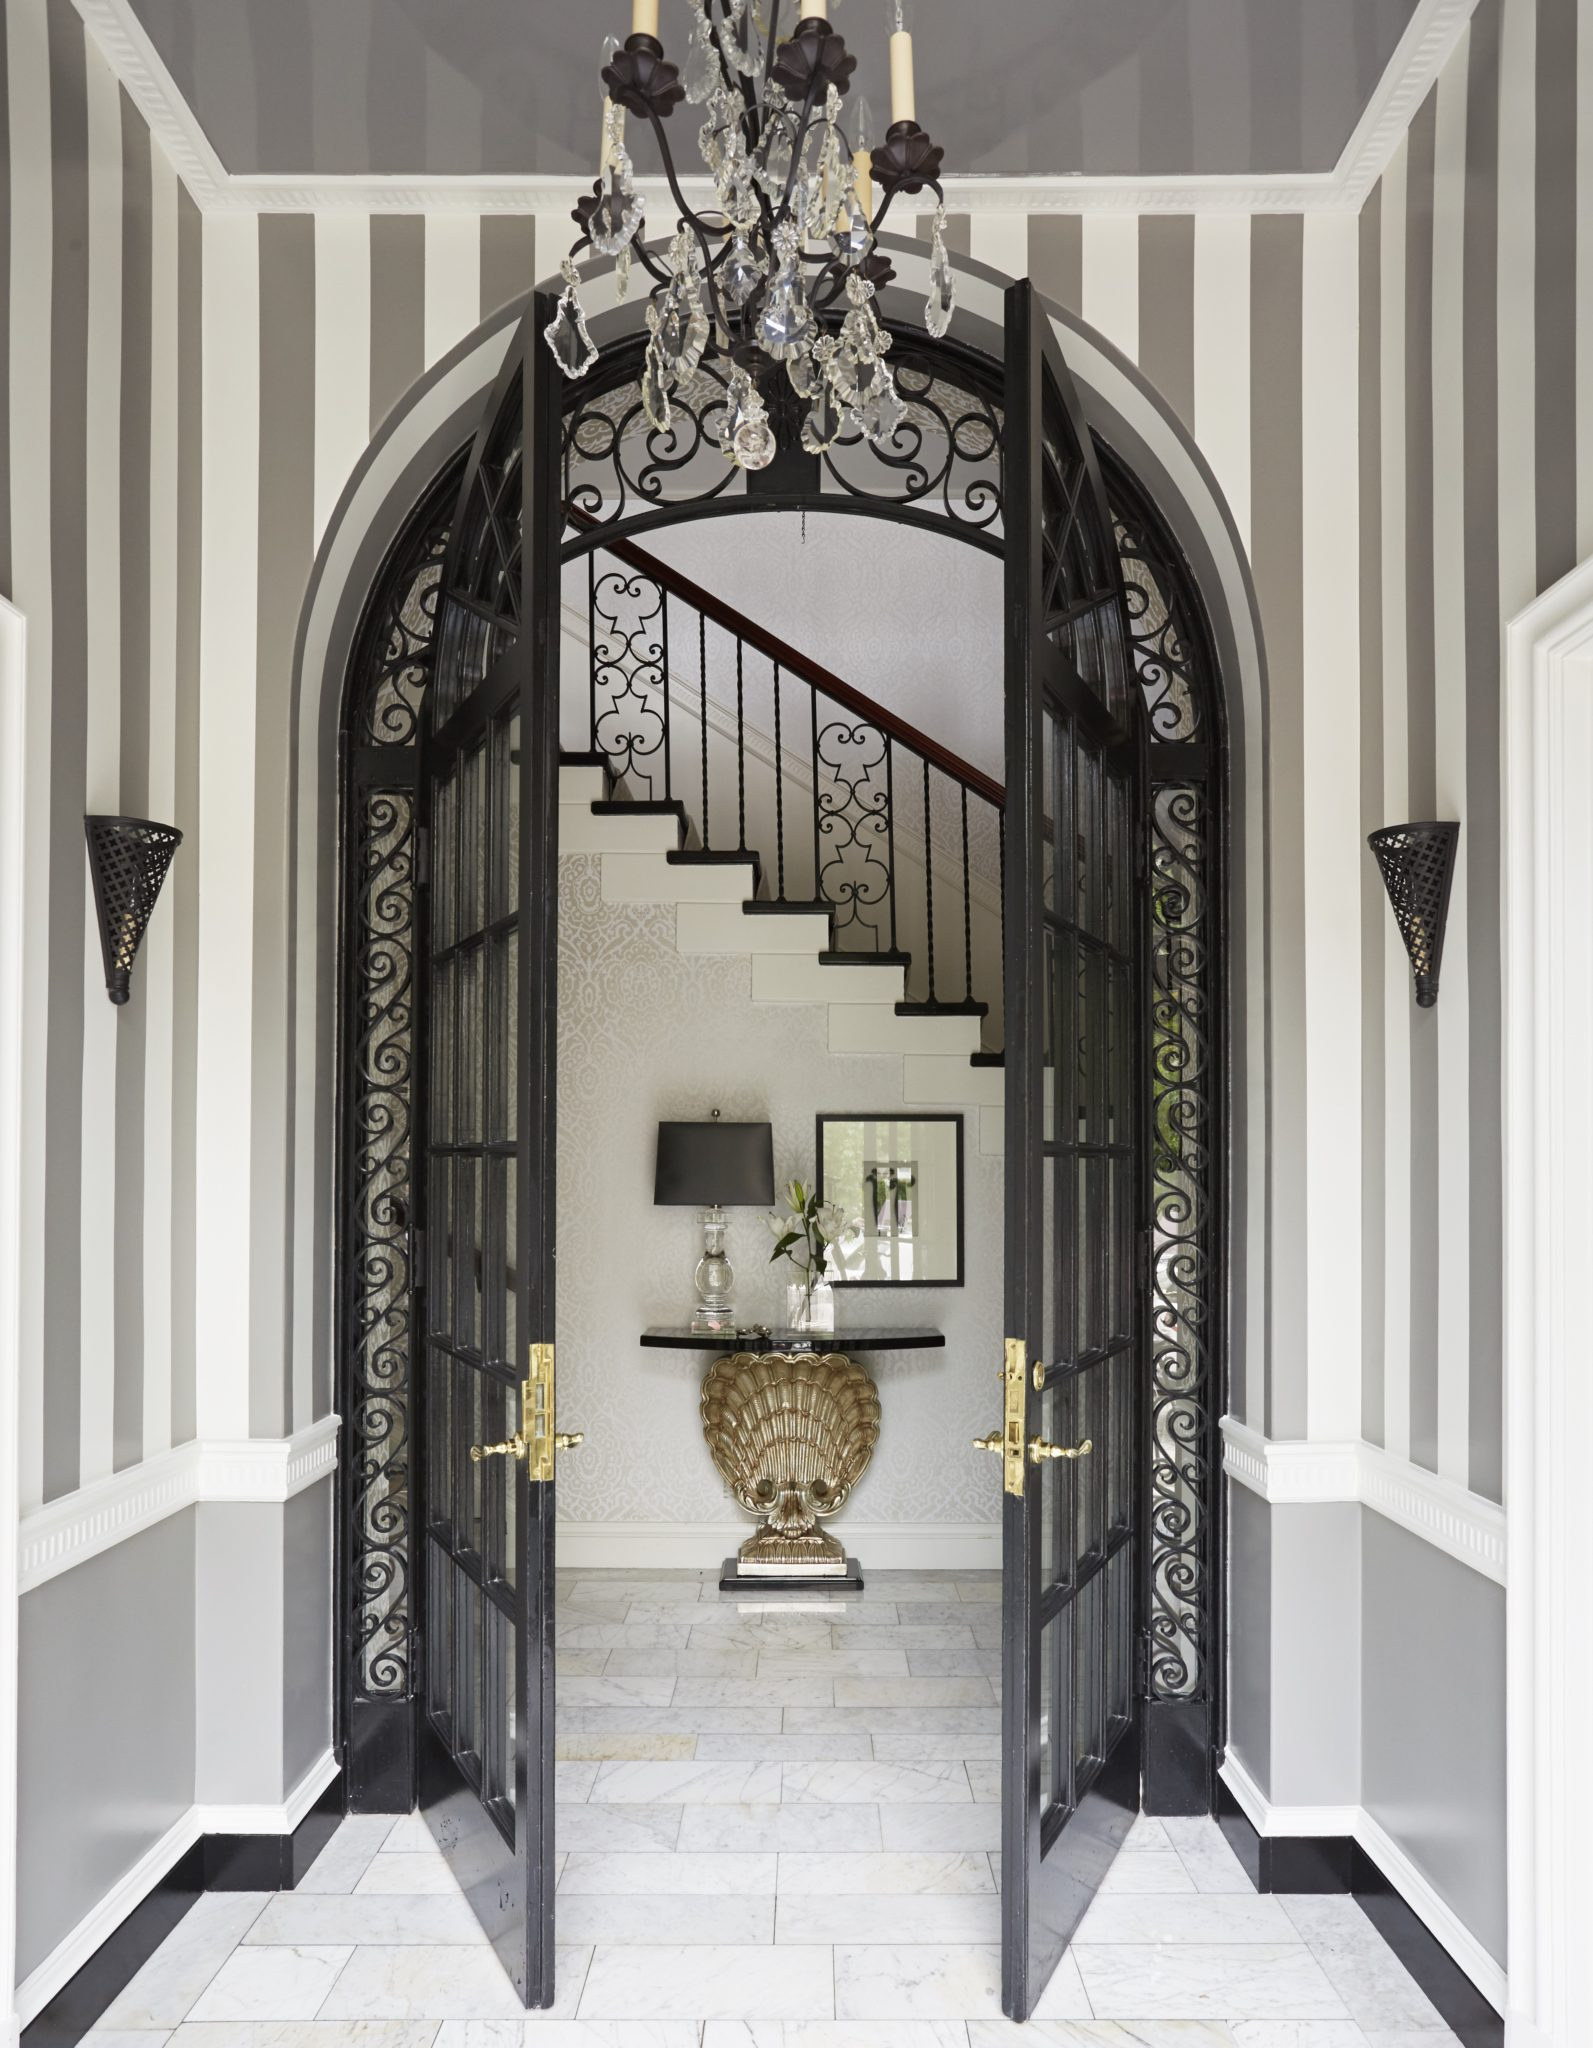 Kelley Interior Design Foyer by Kelley Proxmire, Inc.